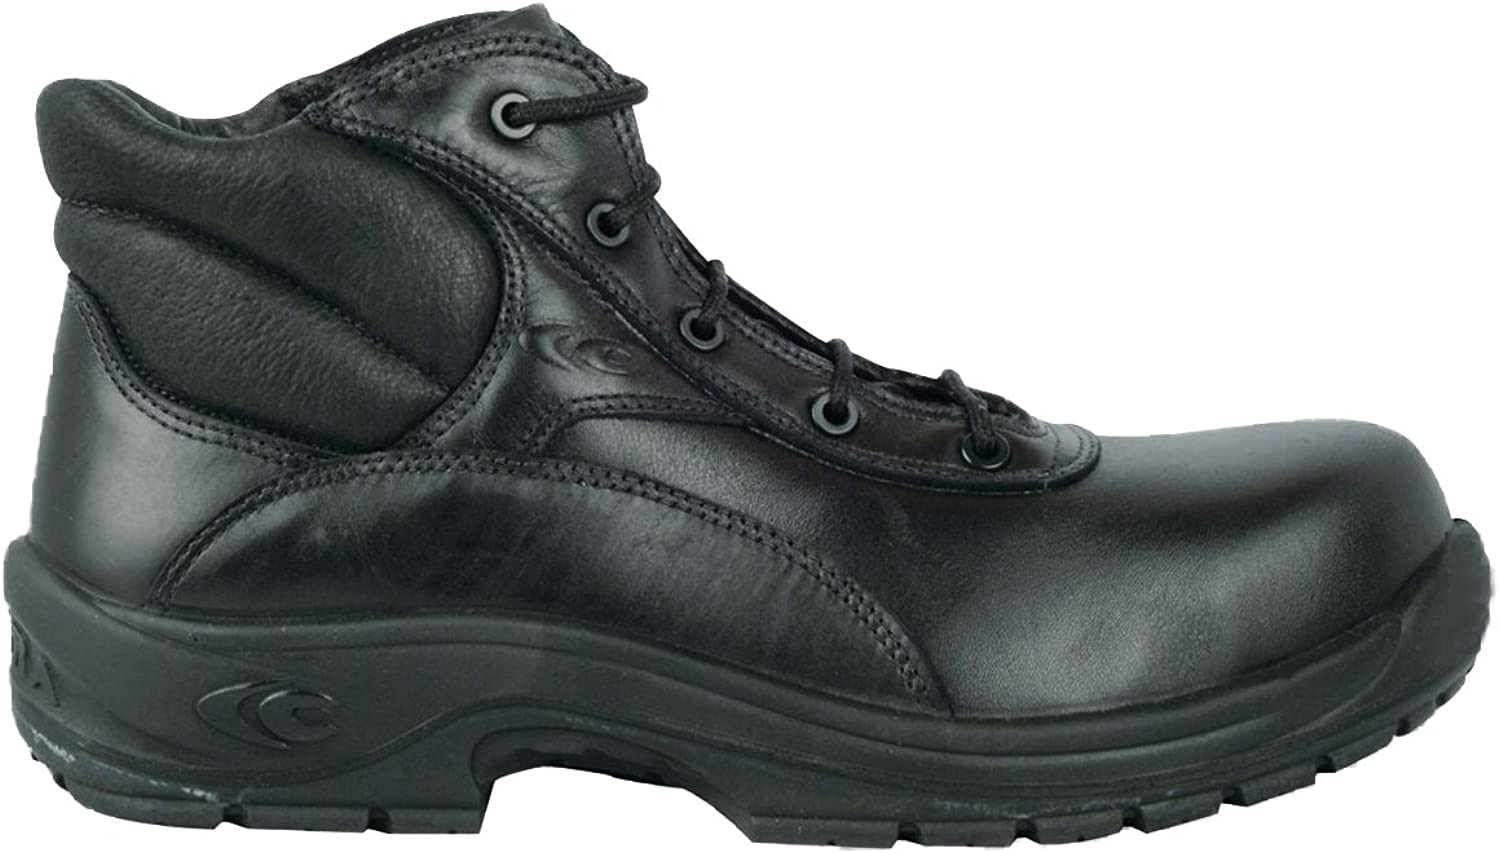 Cofra 10080-000.W47 Size 47 S3 HRO SRC Caesar  Safety shoes - Black